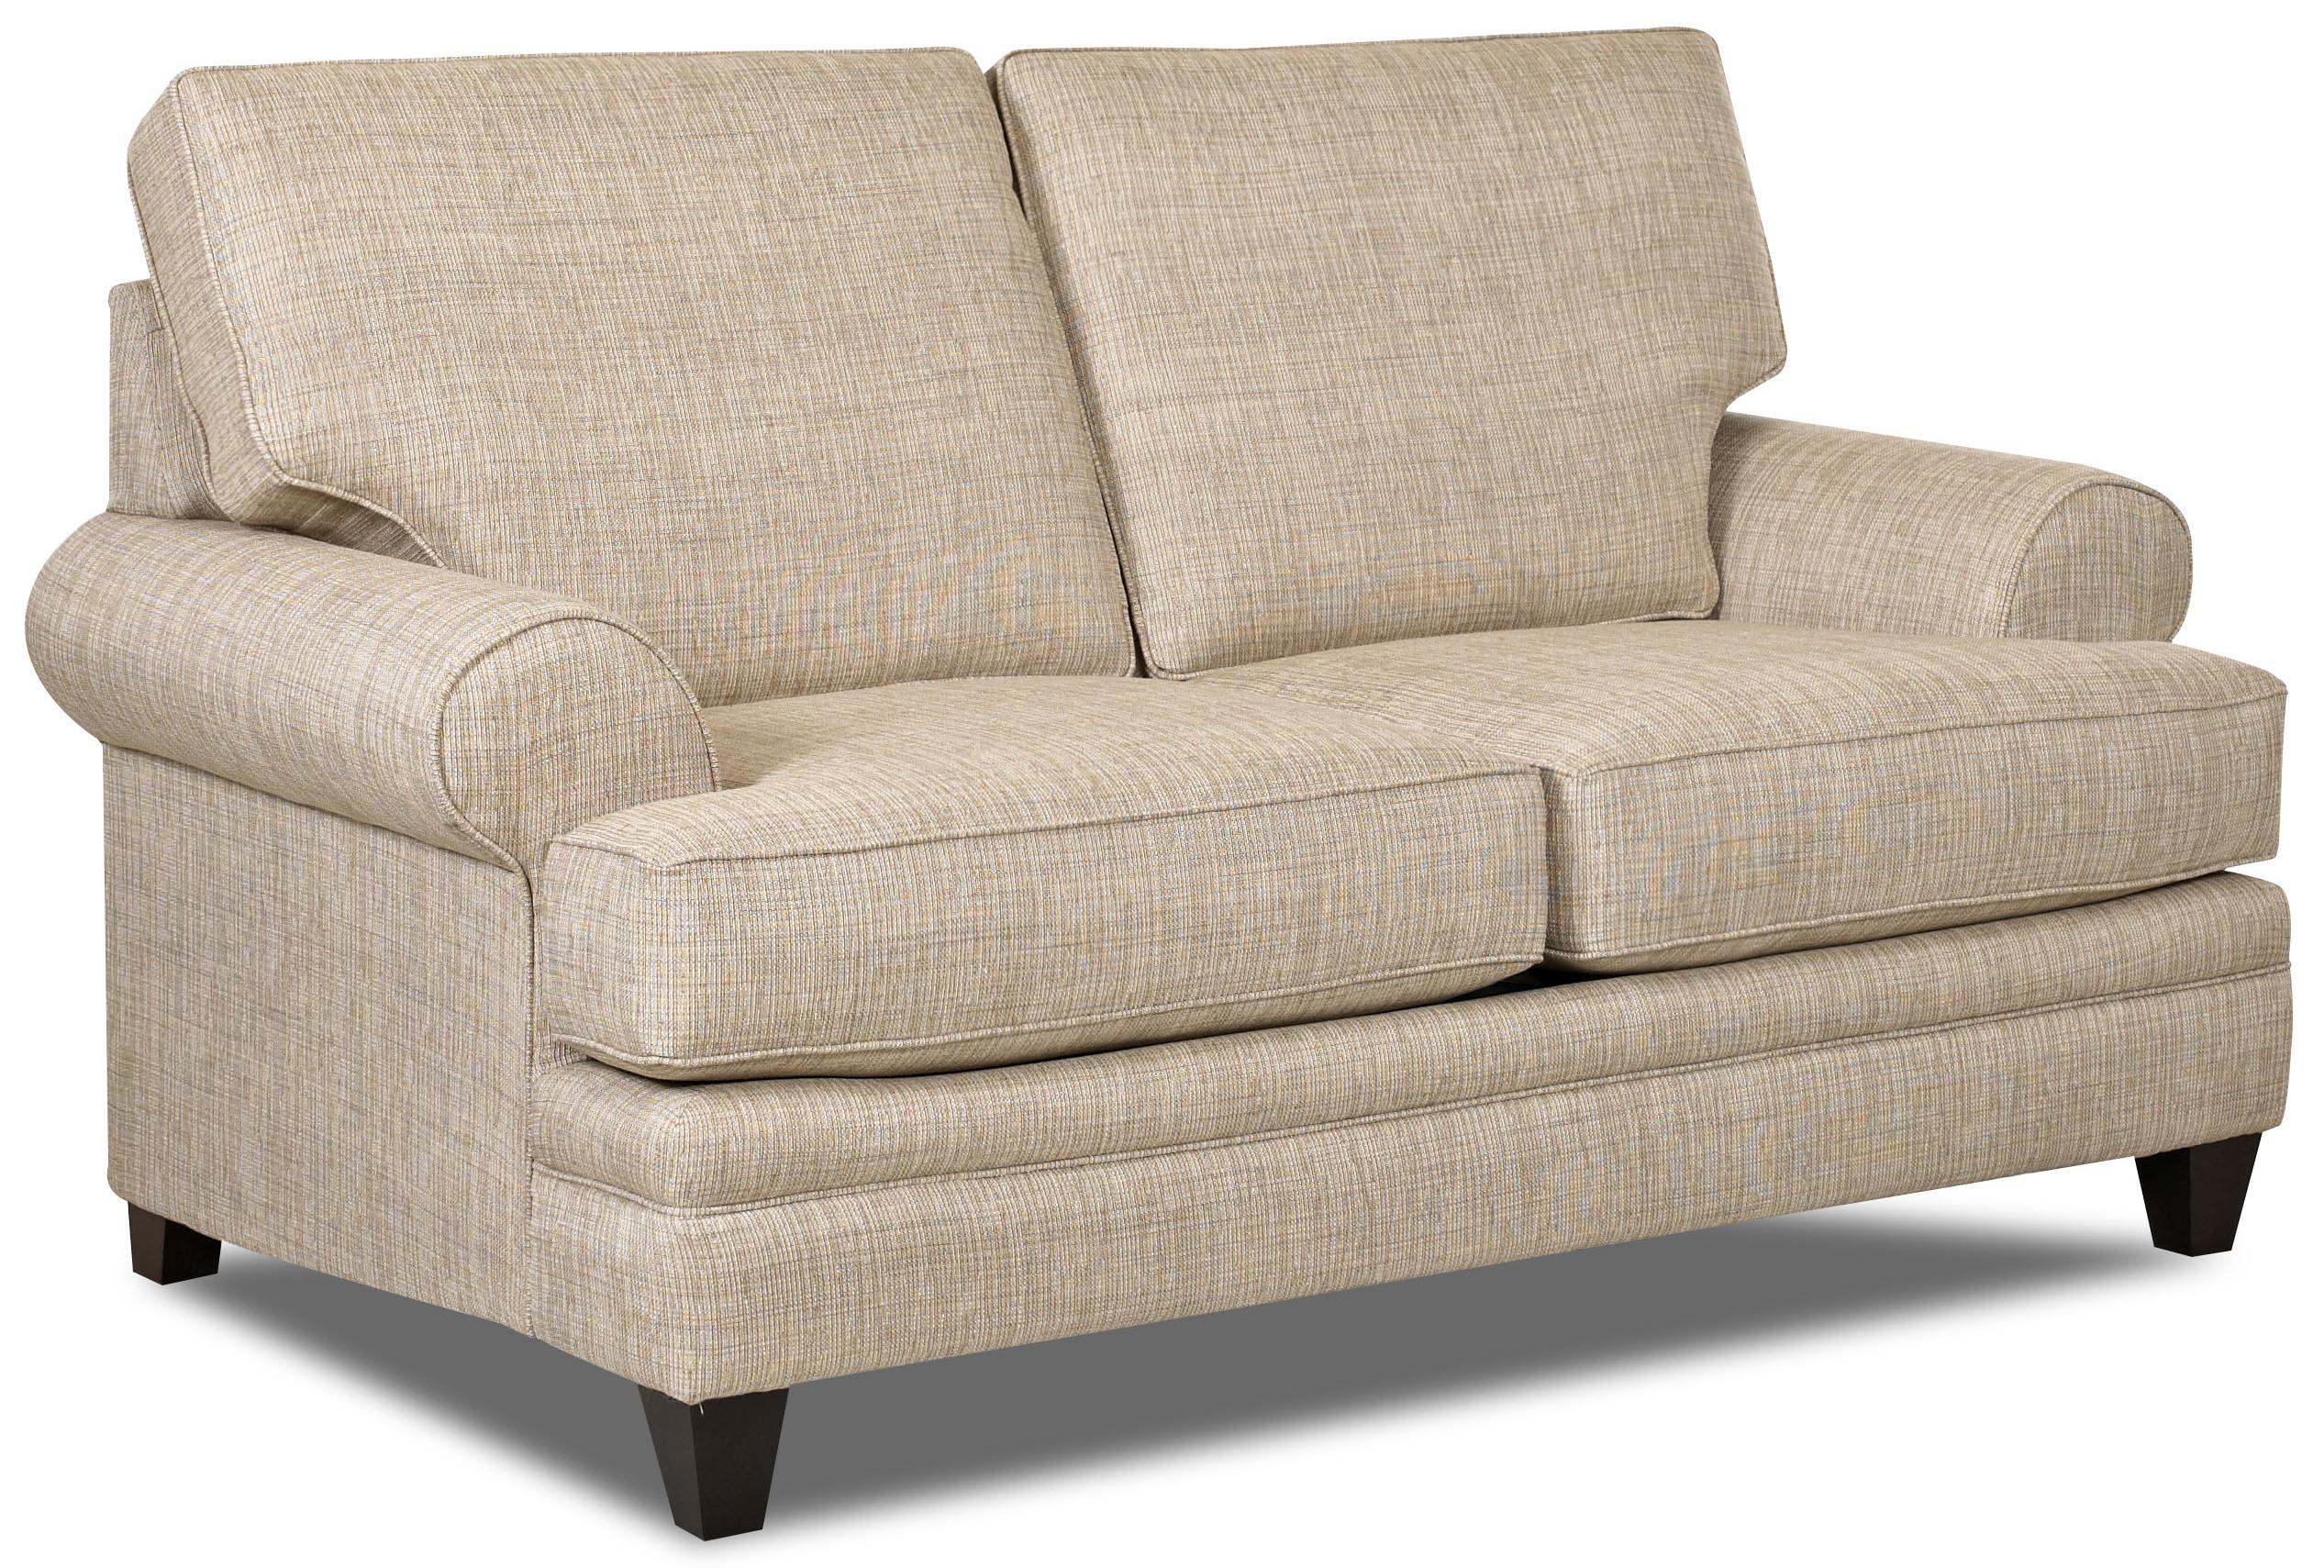 Transitional Loveseat With Low Profile Rolled Arms By Klaussner Wolf And Gardiner Wolf Furniture